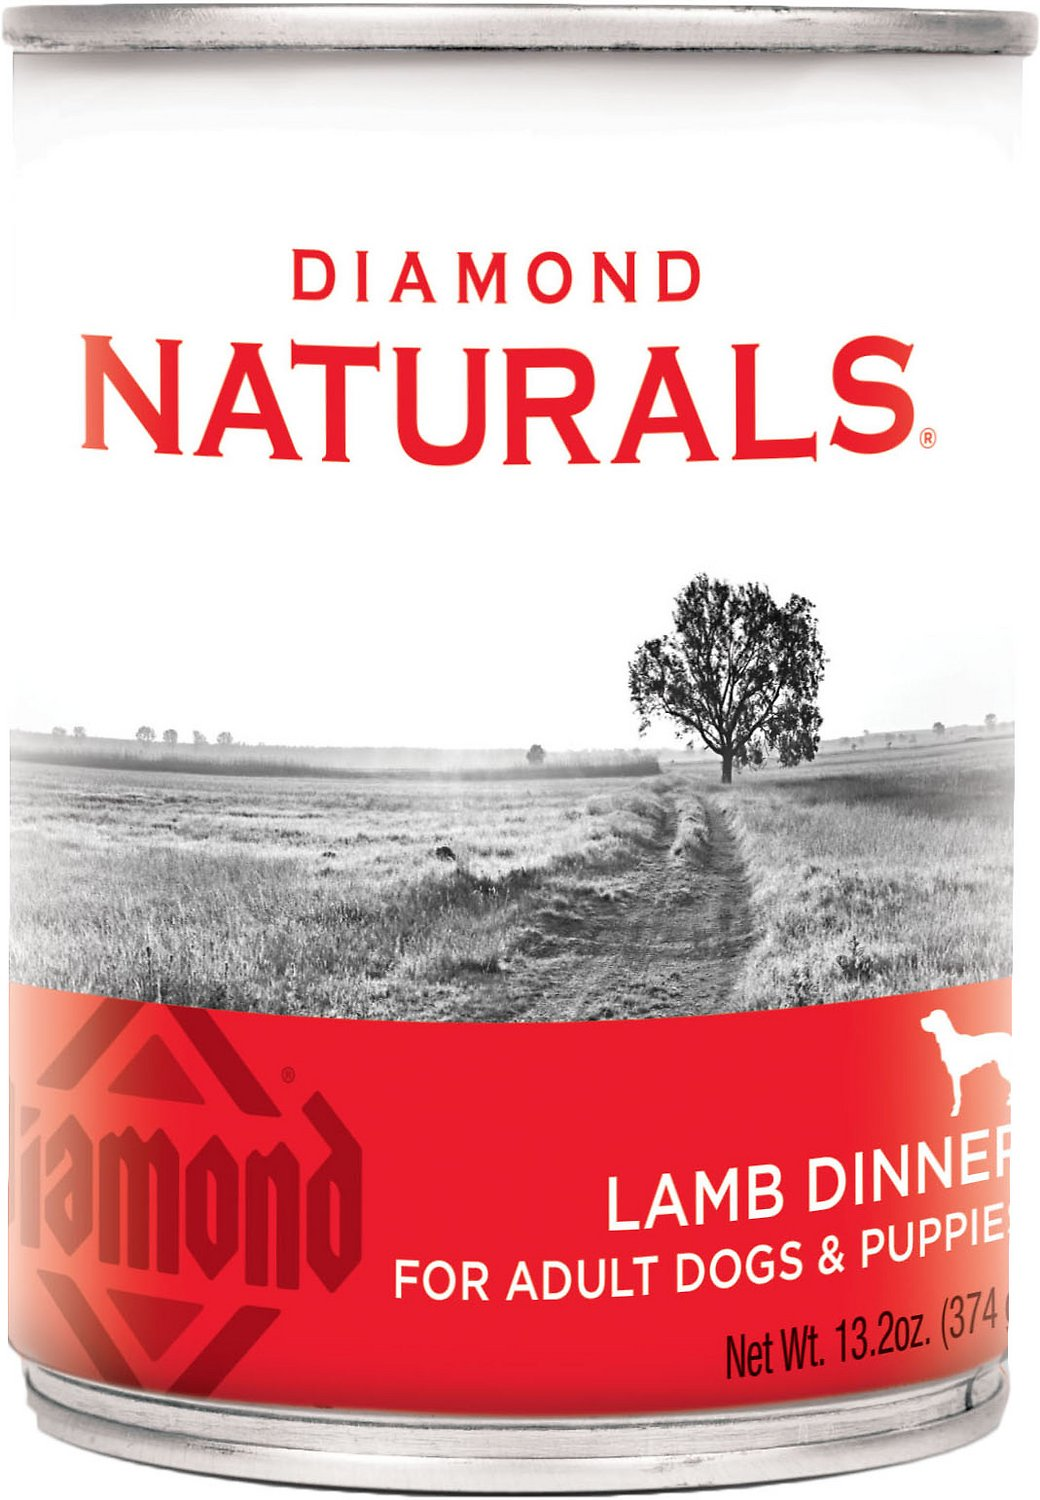 Diamond Naturals Lamb Dinner Adult & Puppy Canned Dog Food Image